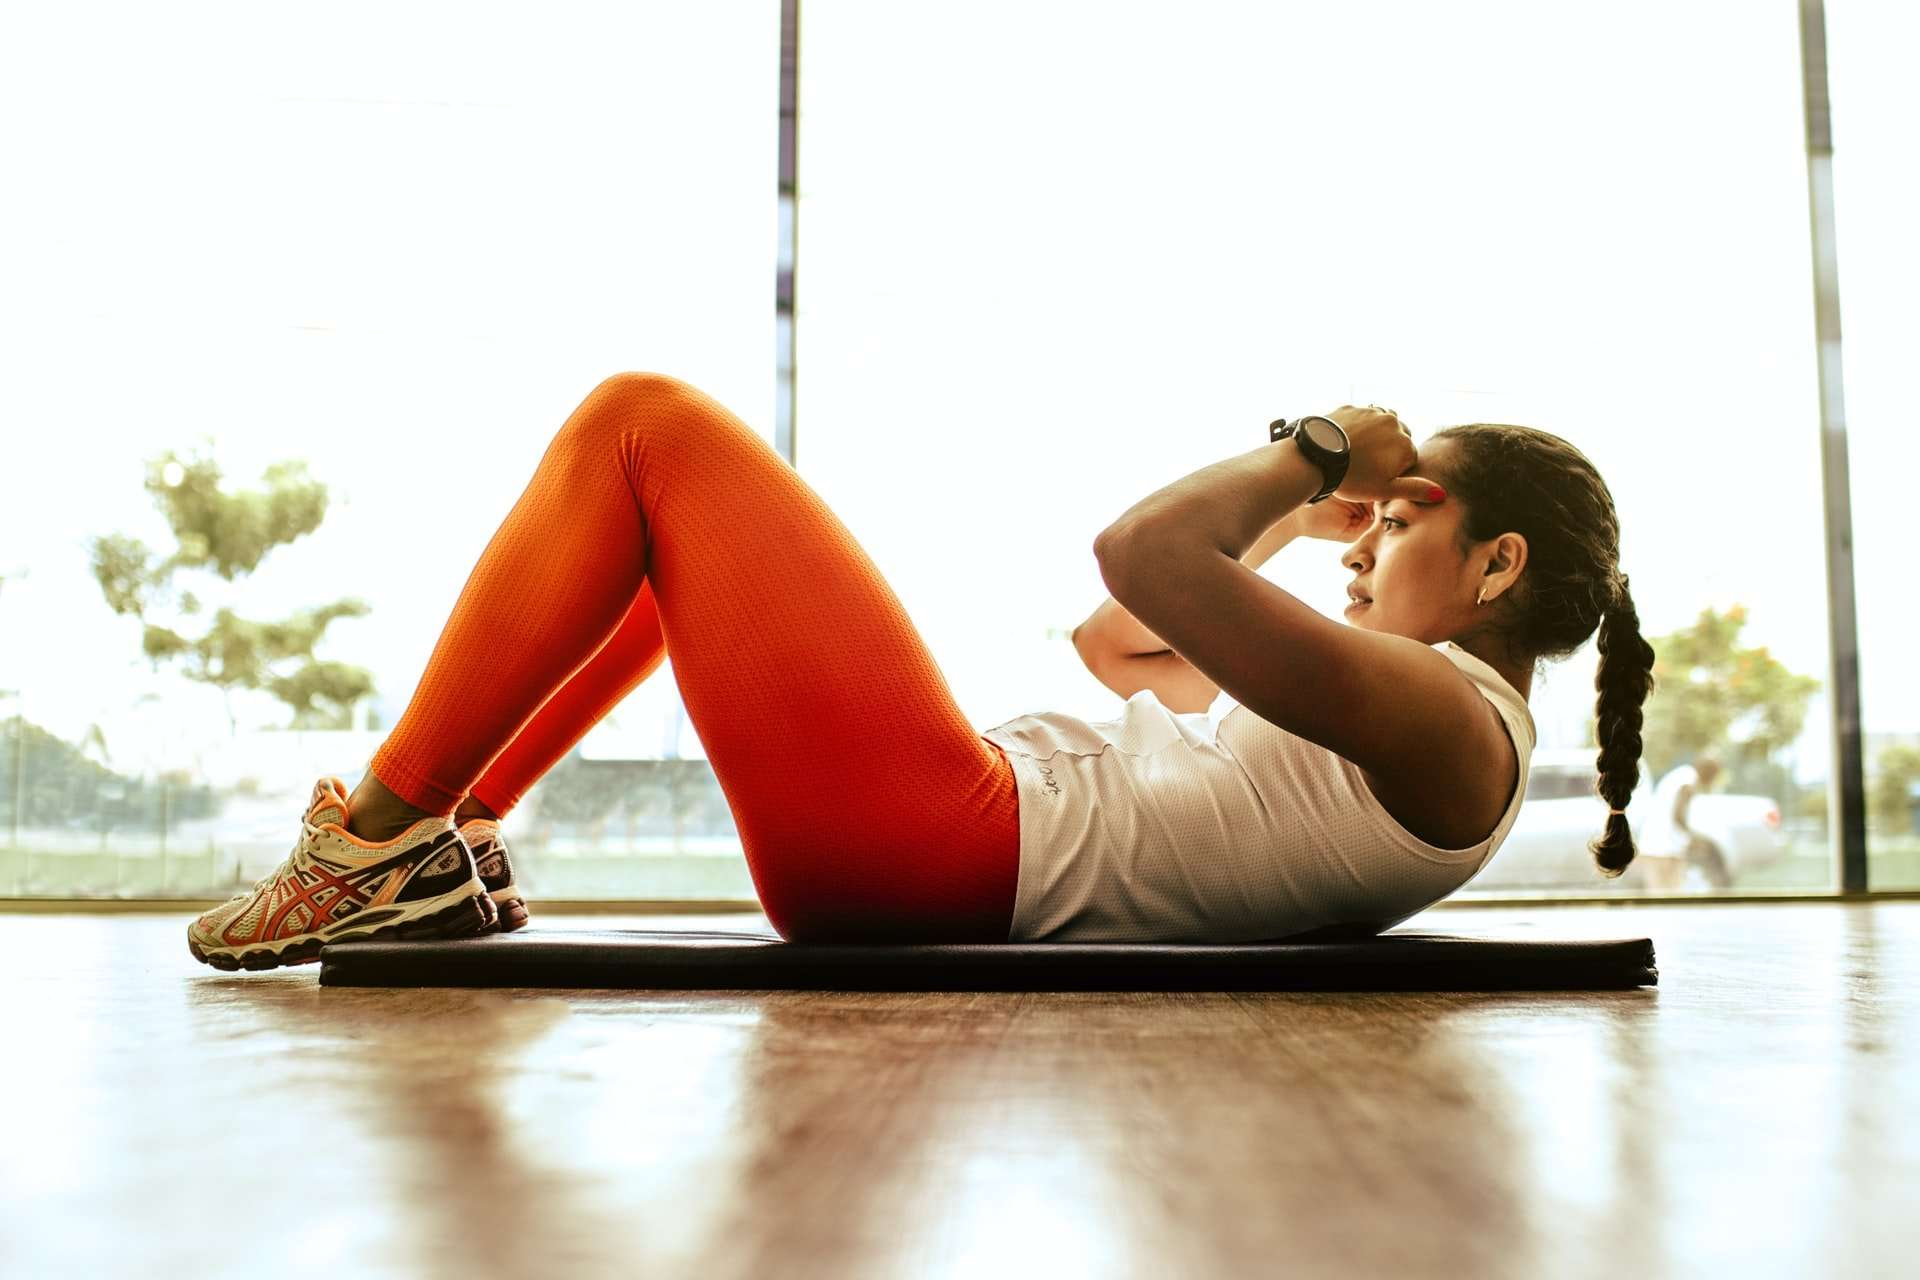 Pre-Workout: 5 Things You Should Do to Maximize Results